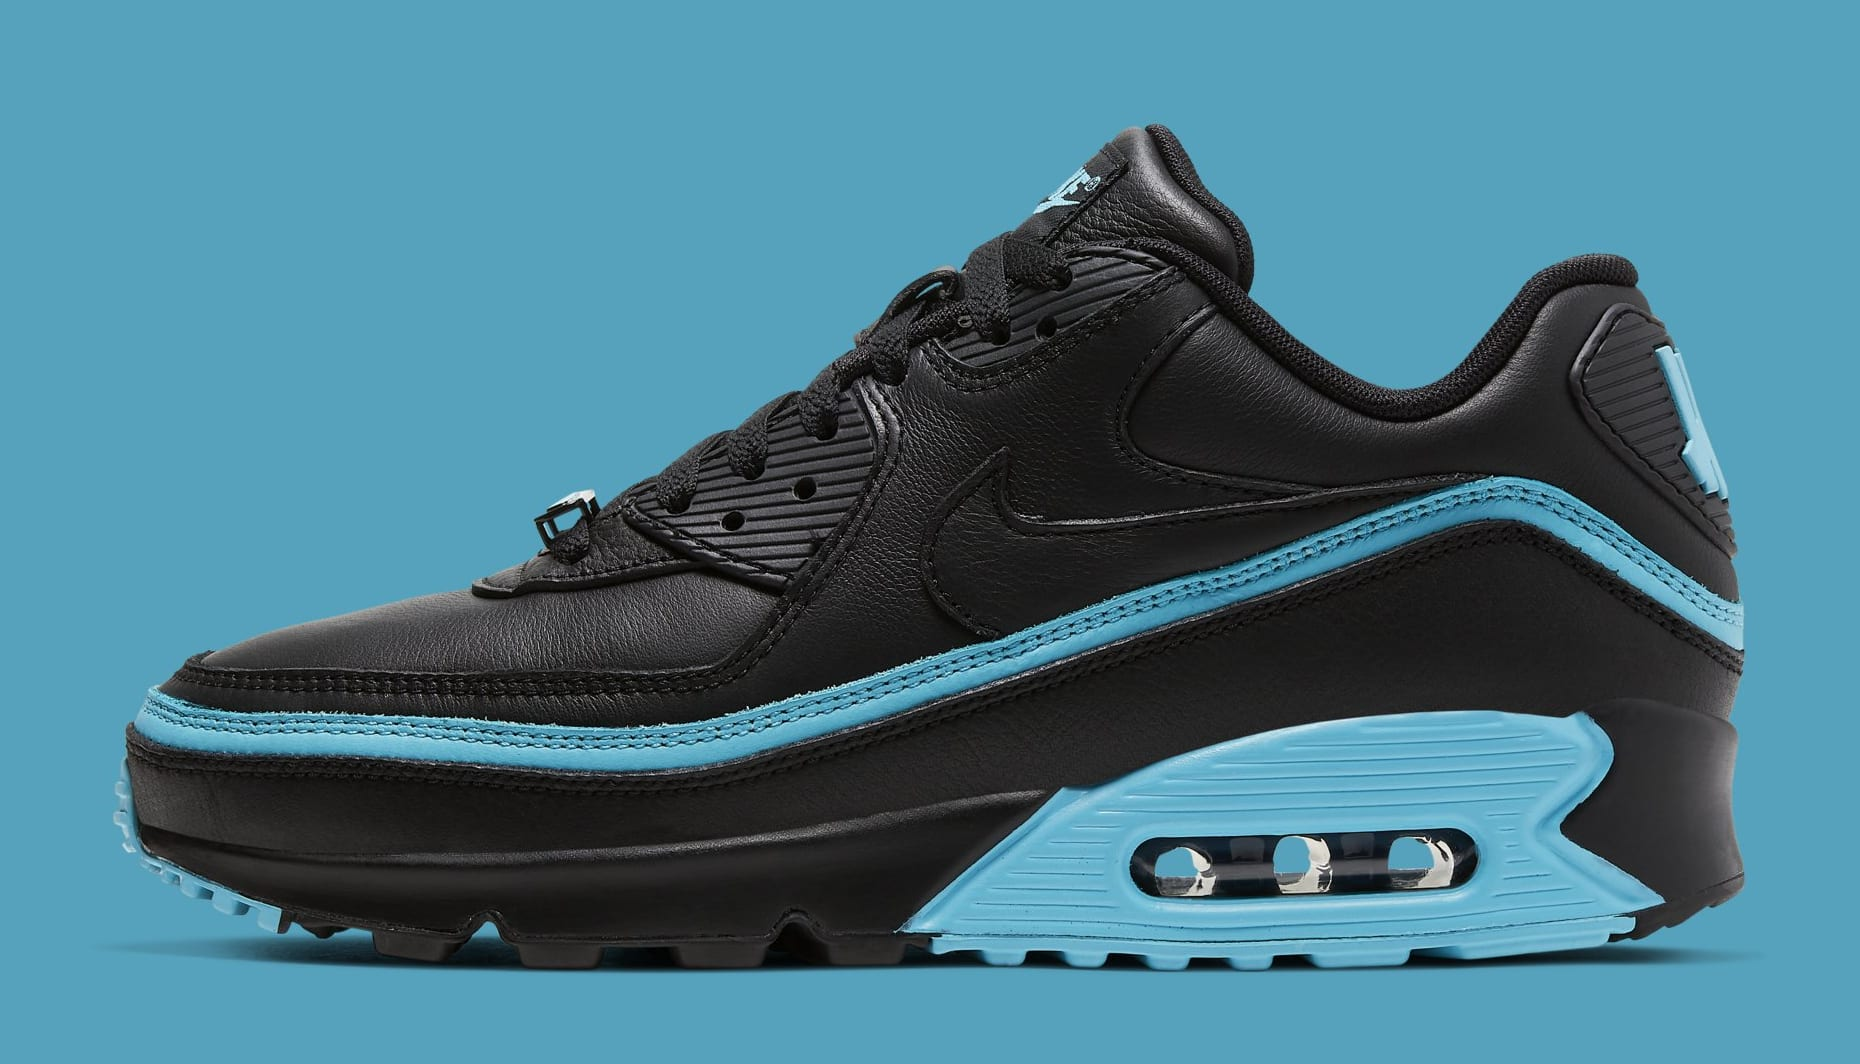 undefeated-nike-air-max-90-black-blue-fury-cj7197-002-lateral